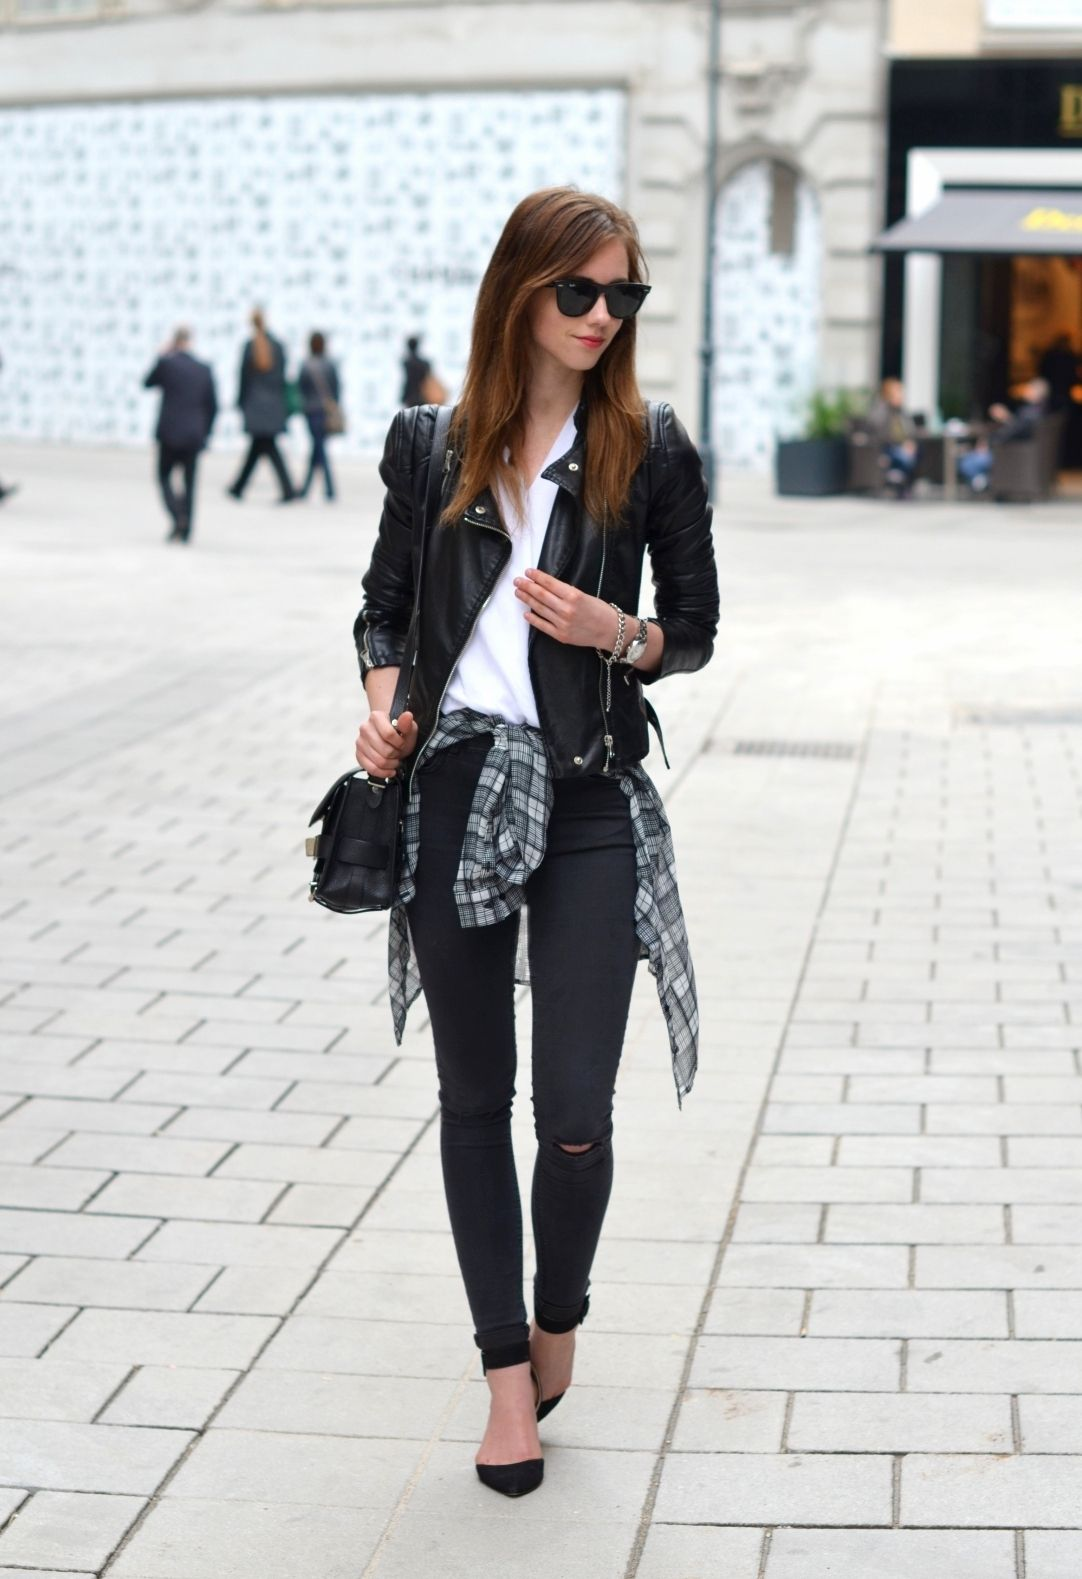 Flannel outfits around waist  VOGUE HAUS  My Style  Pinterest  Haus Clothes and Wardrobes